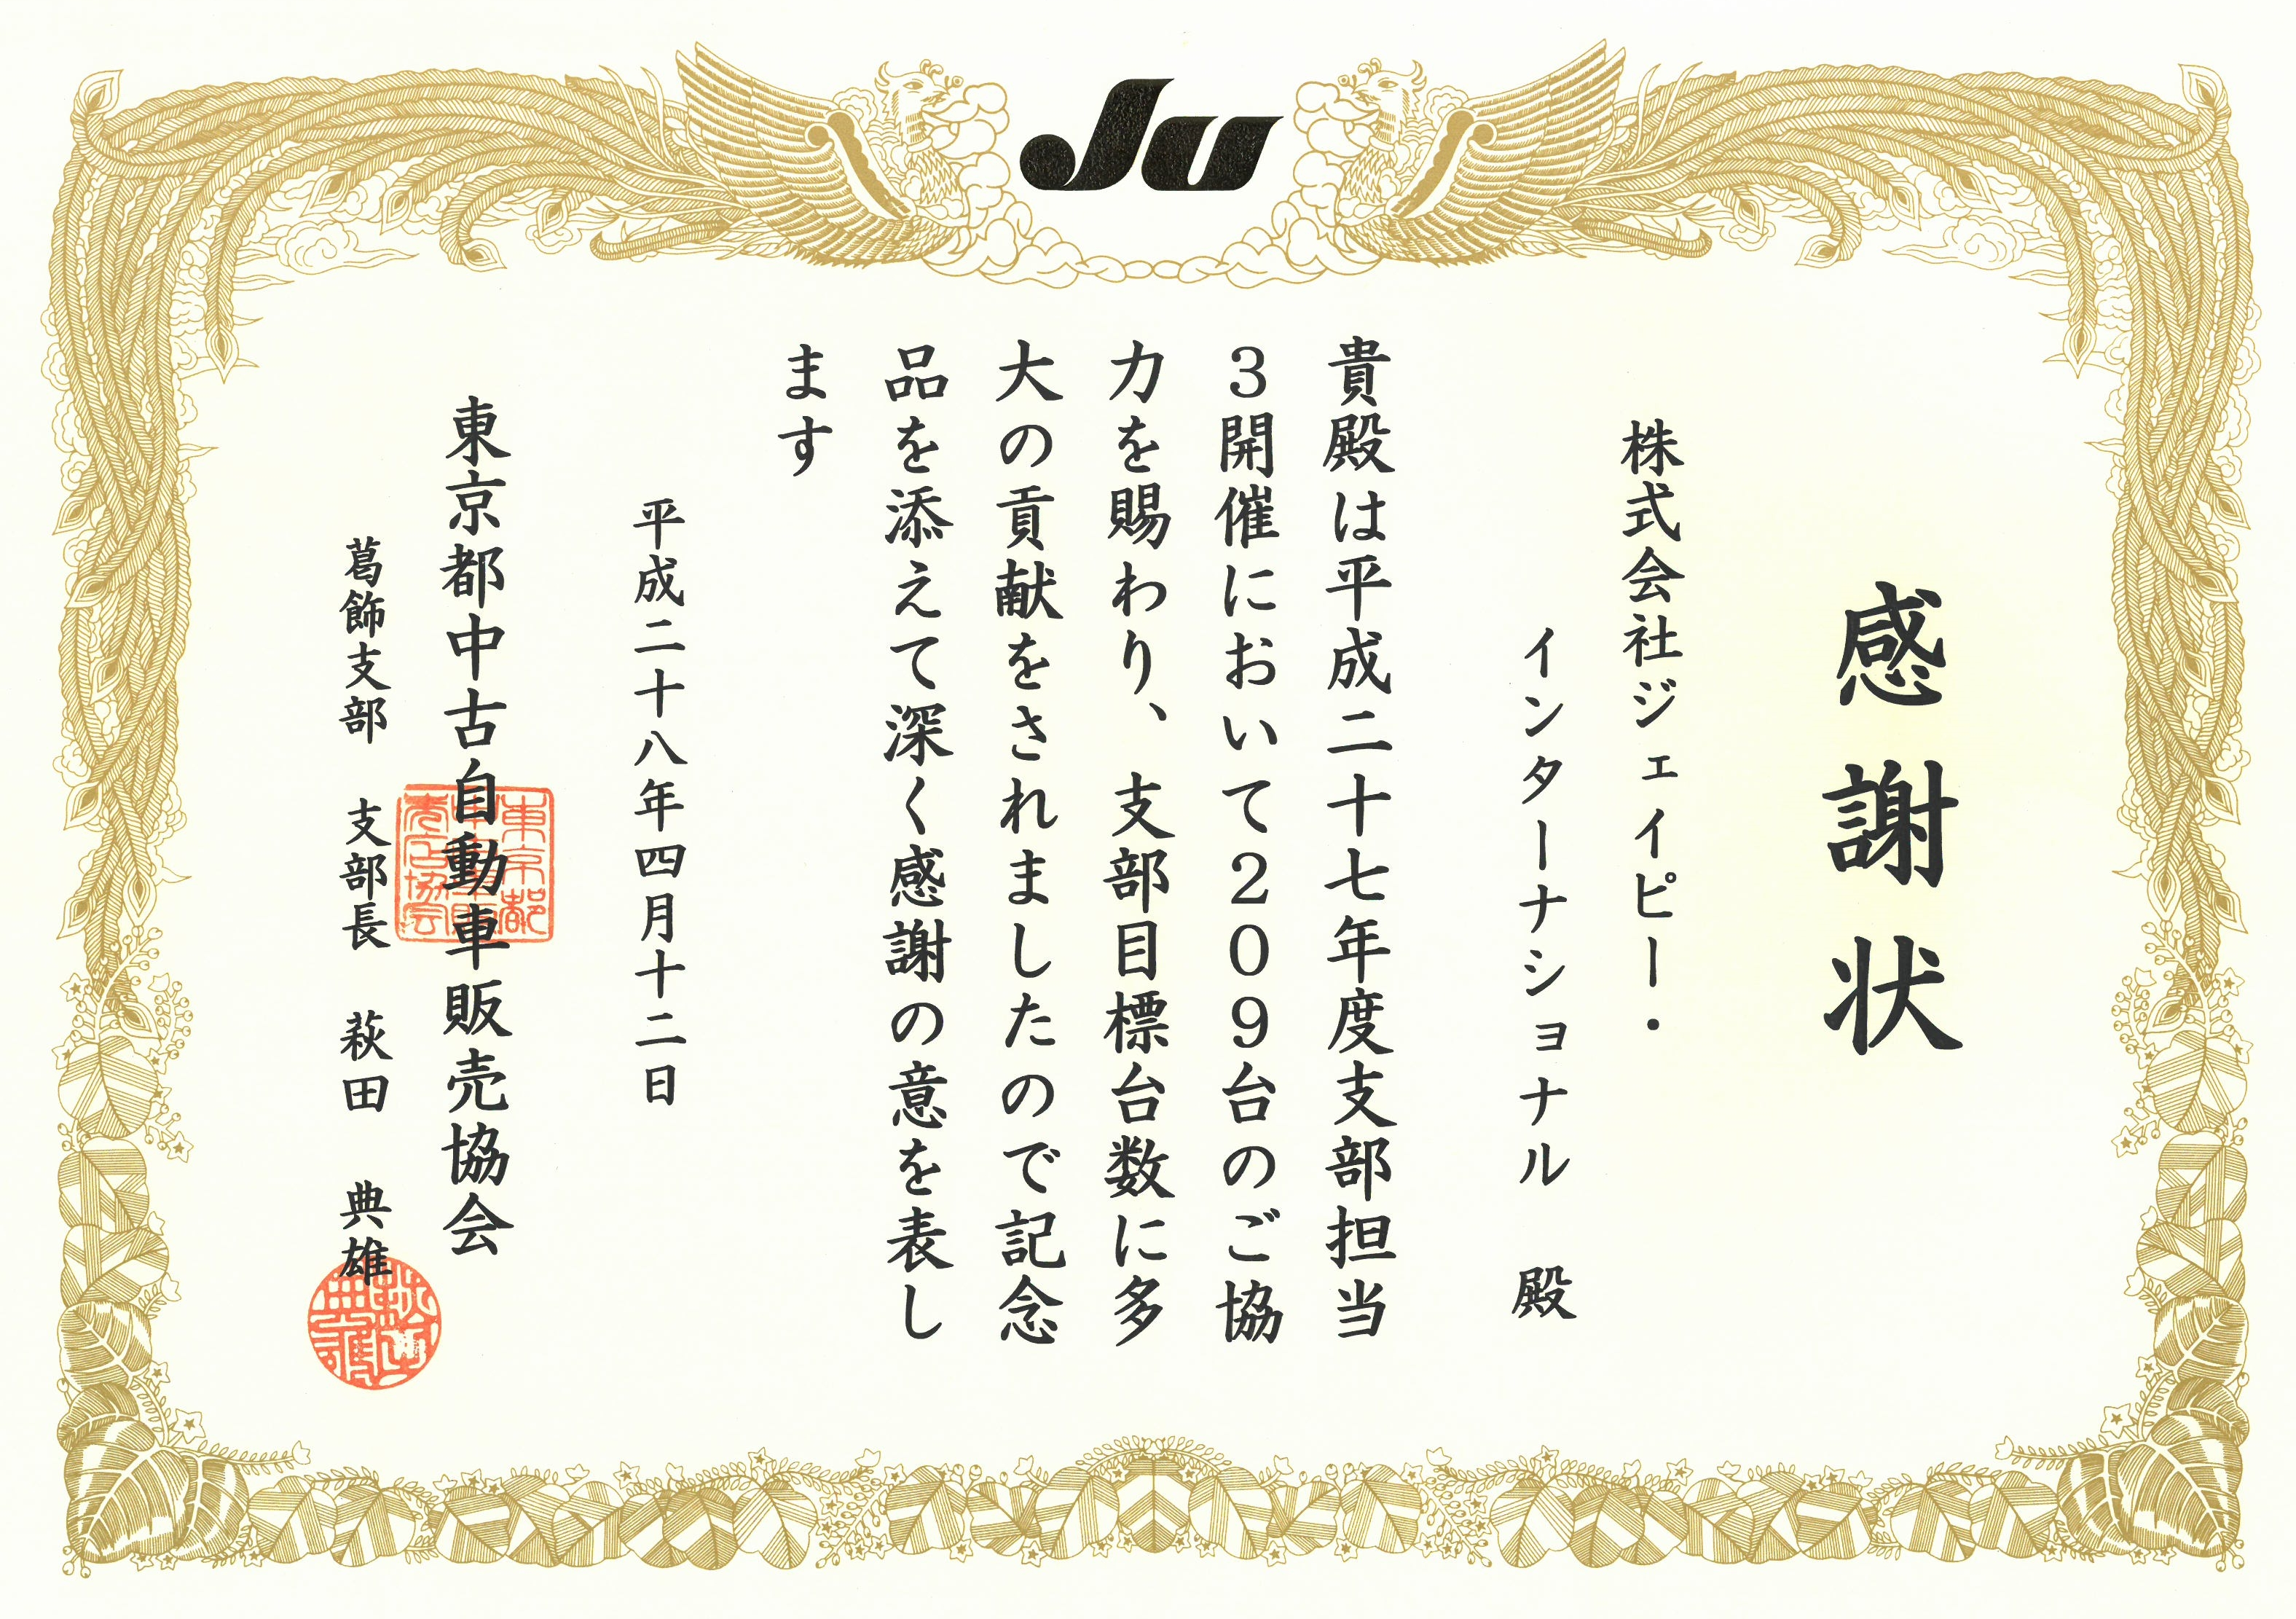 2016 April 12th Certificate of Appreciation from JU Auto Auction